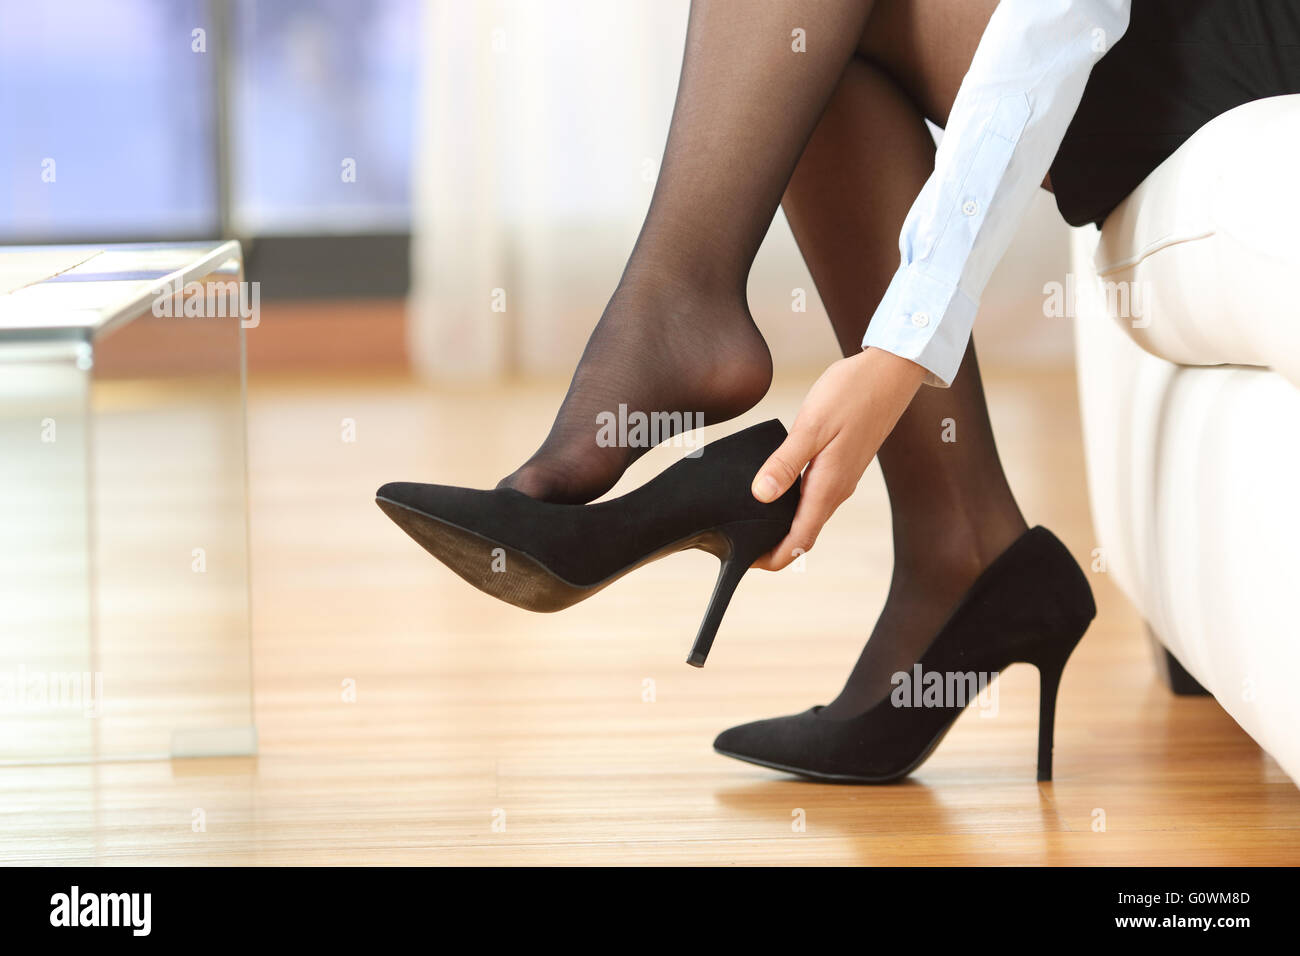 Businesswoman taking off high heels shoes after work at home - Stock Image